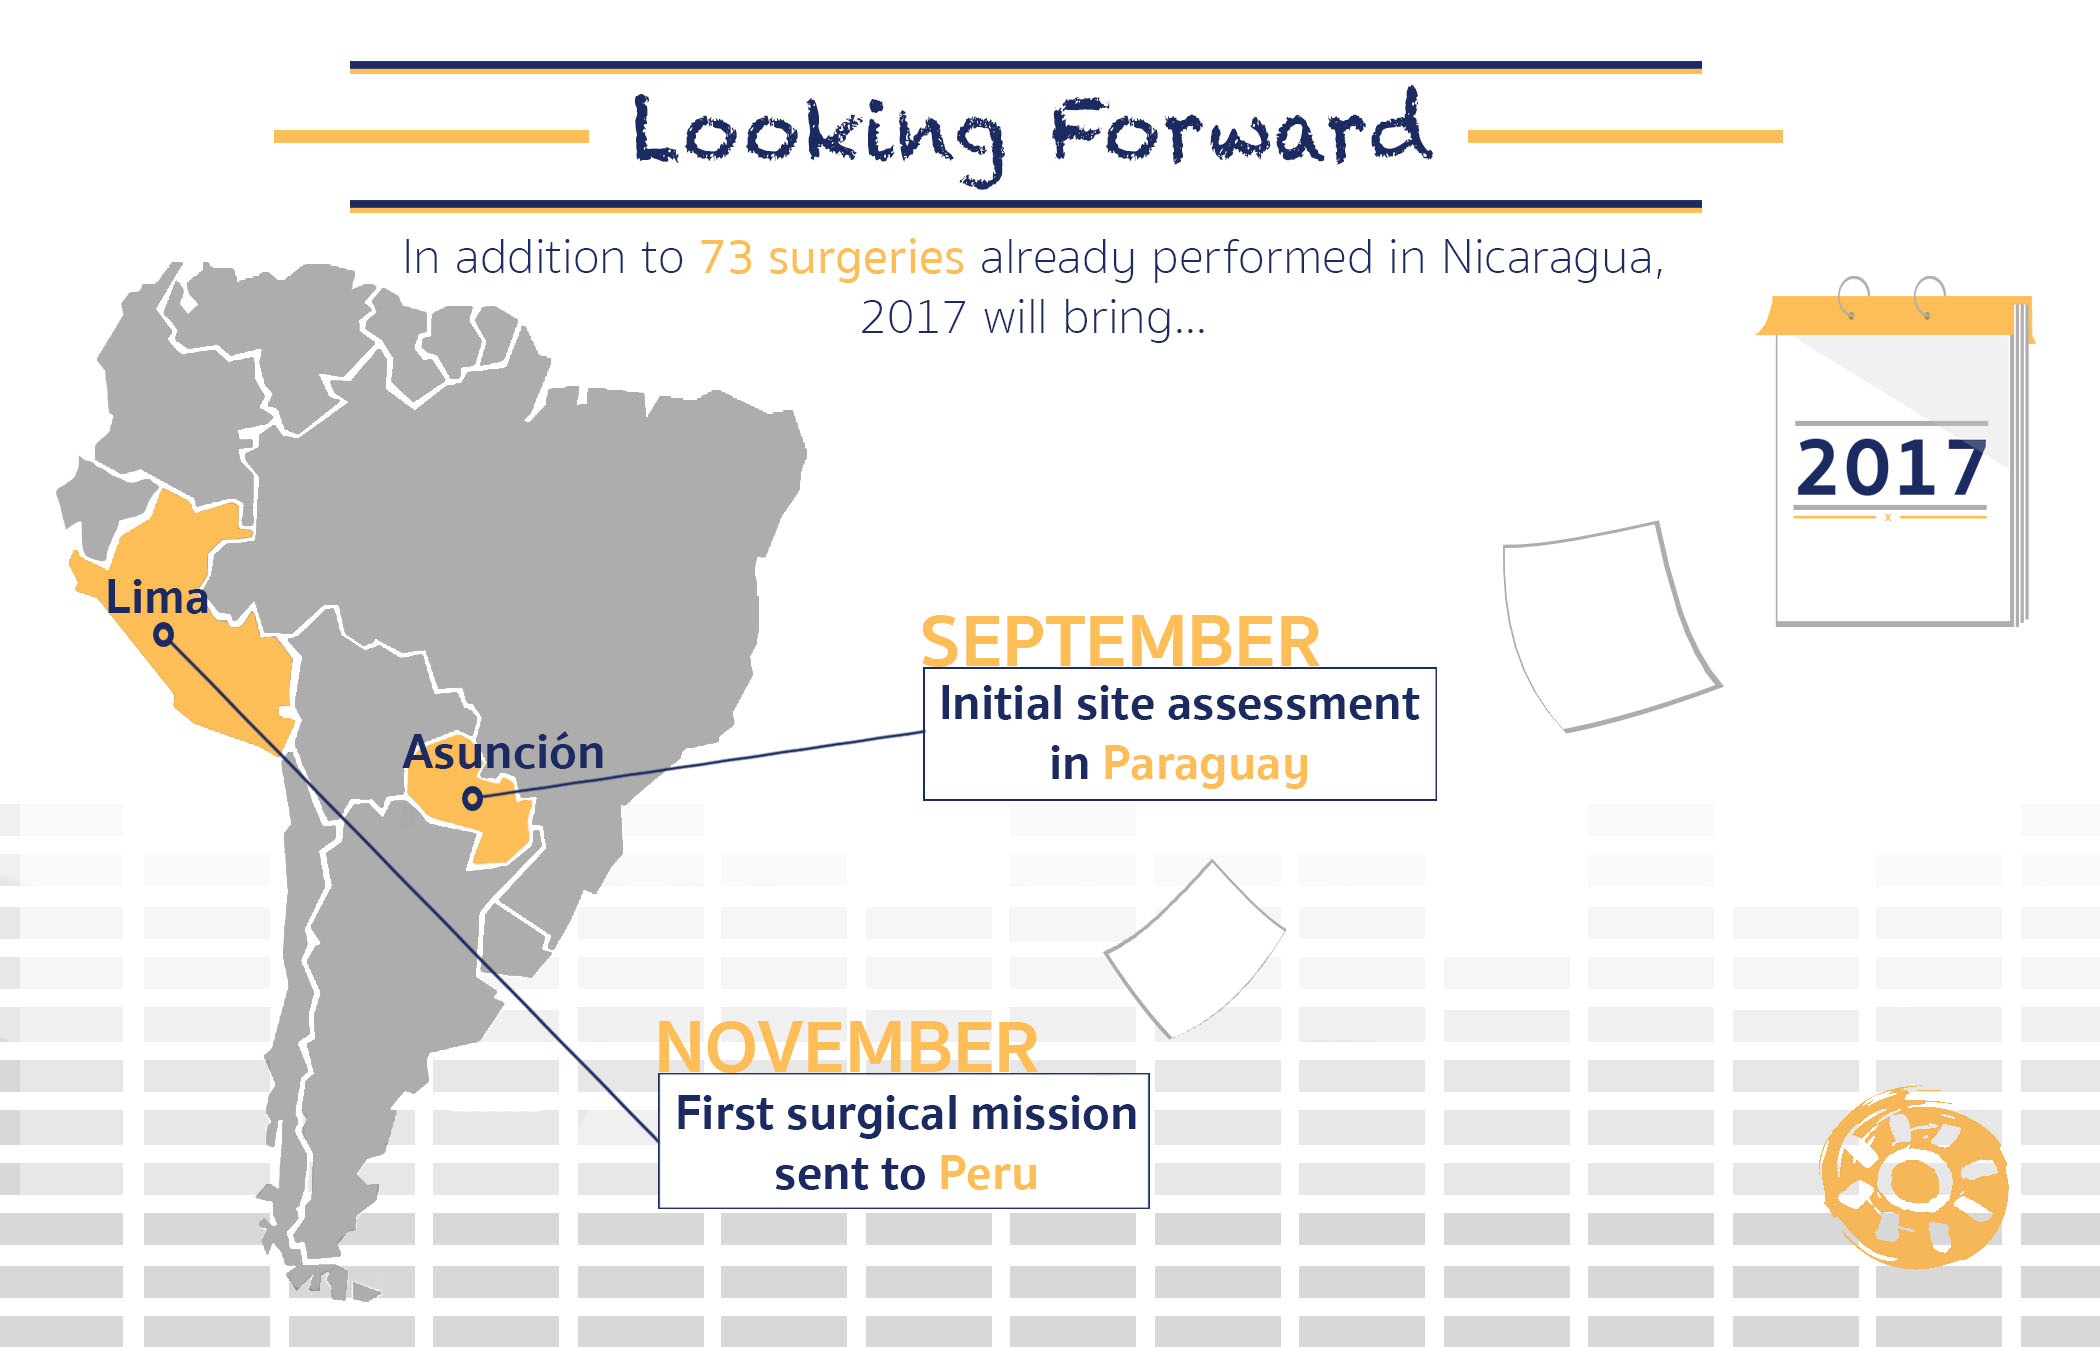 Infographic of past surgeries and future missions in Latin America